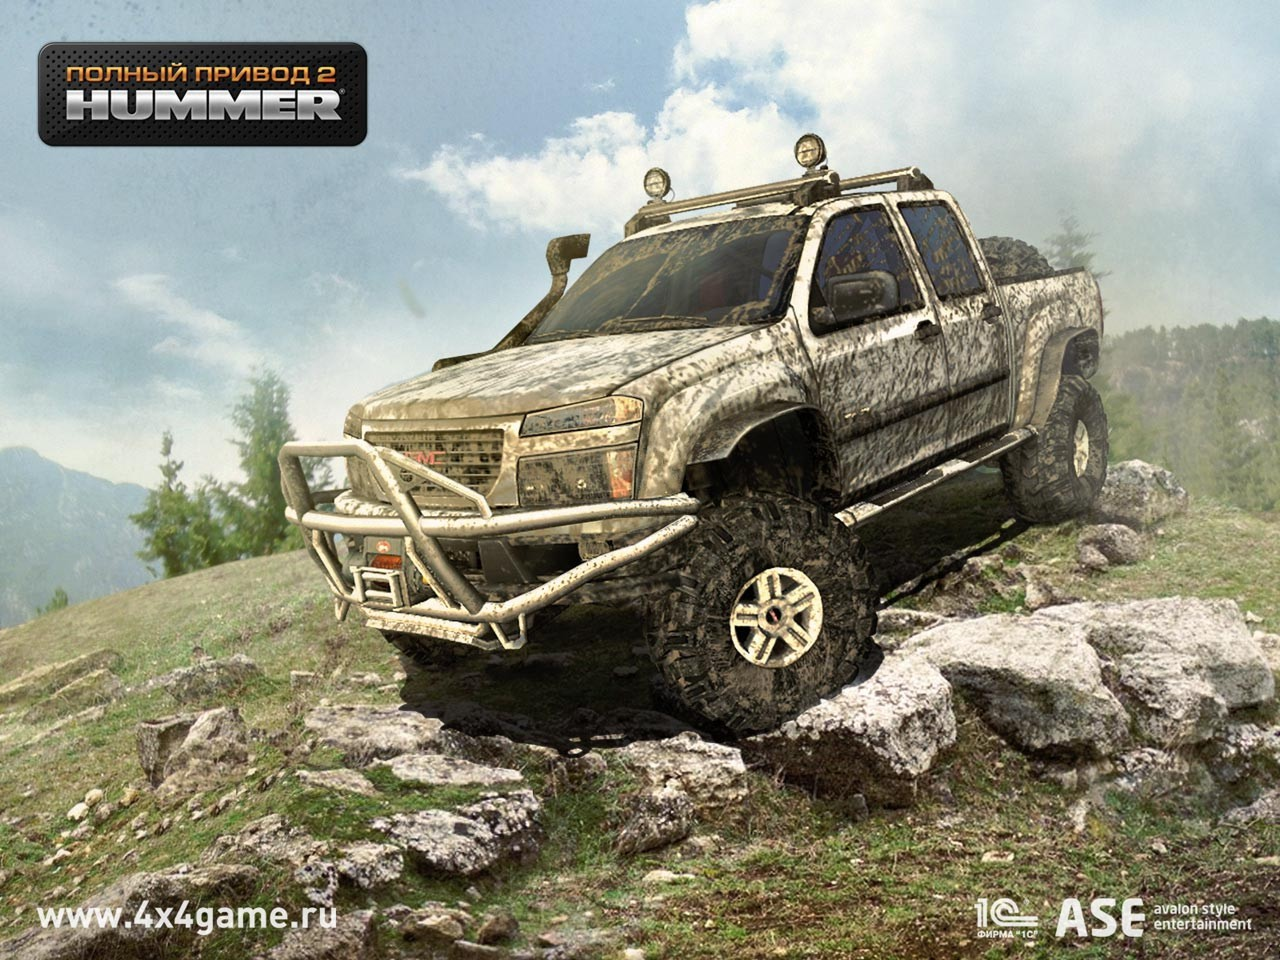 file hosting 4x4 Off Road 2 Hummer Games 1280x960 Wallpapers 1280x960